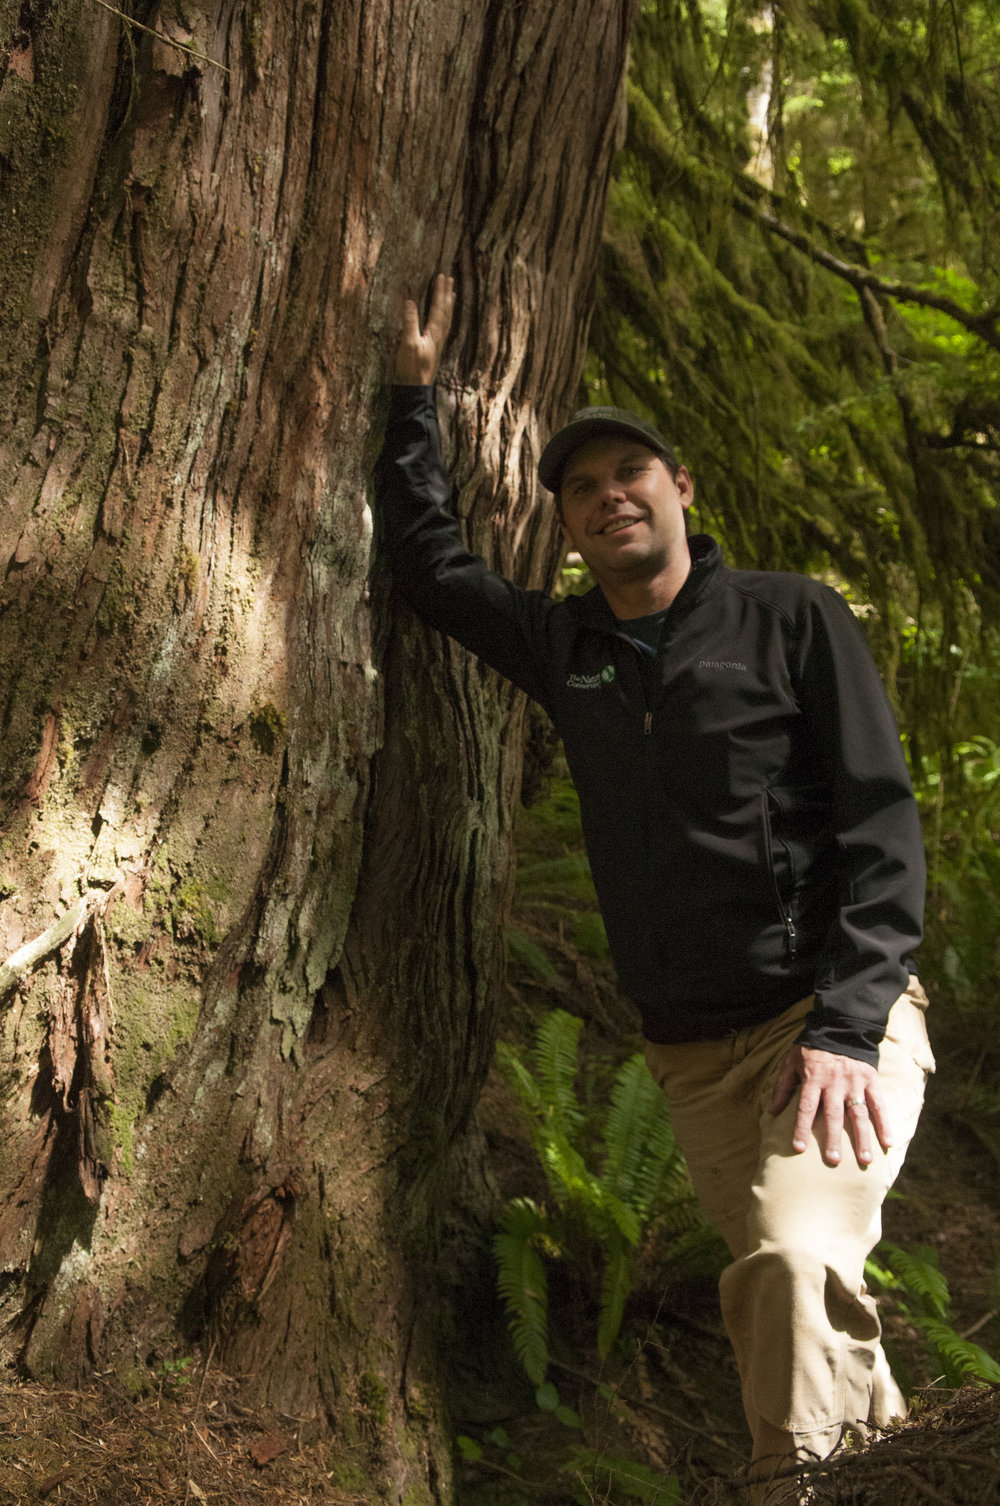 Kyle Smith near a Western red cedar along the Hoh River. Nikolaj Lasbo/TNC